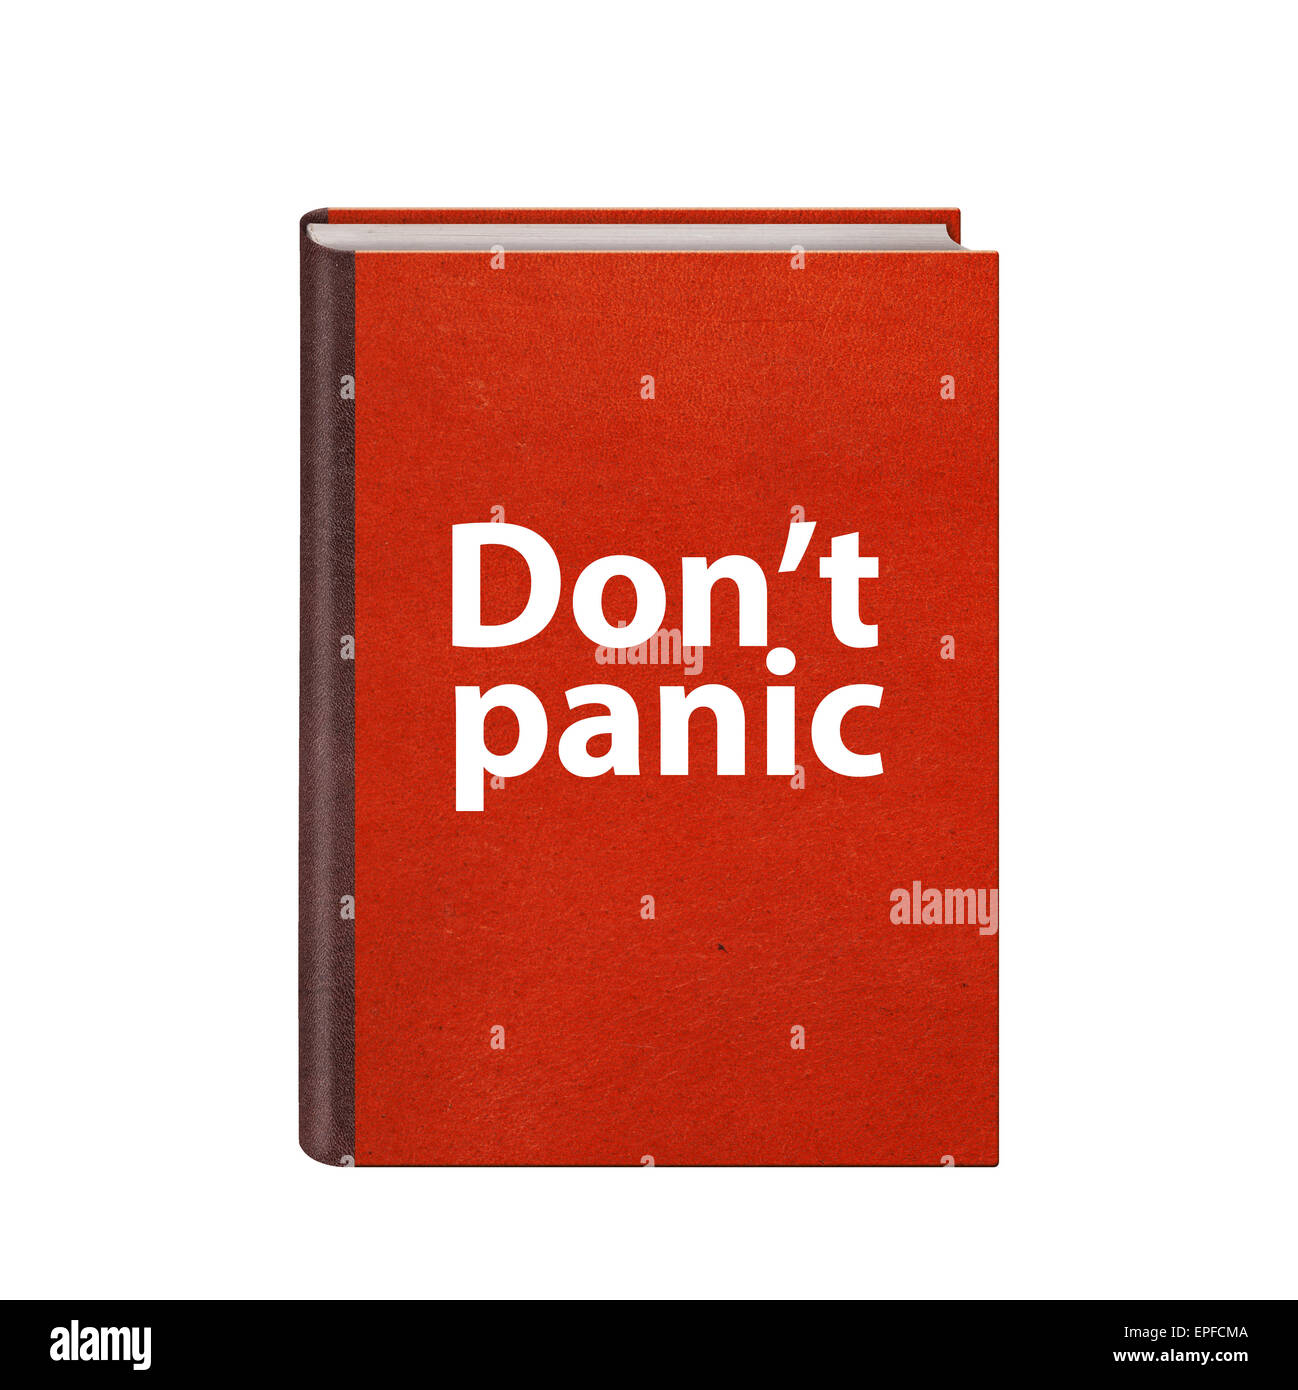 5553bb8df Red book with Dont panic text on cover isolated - Stock Image